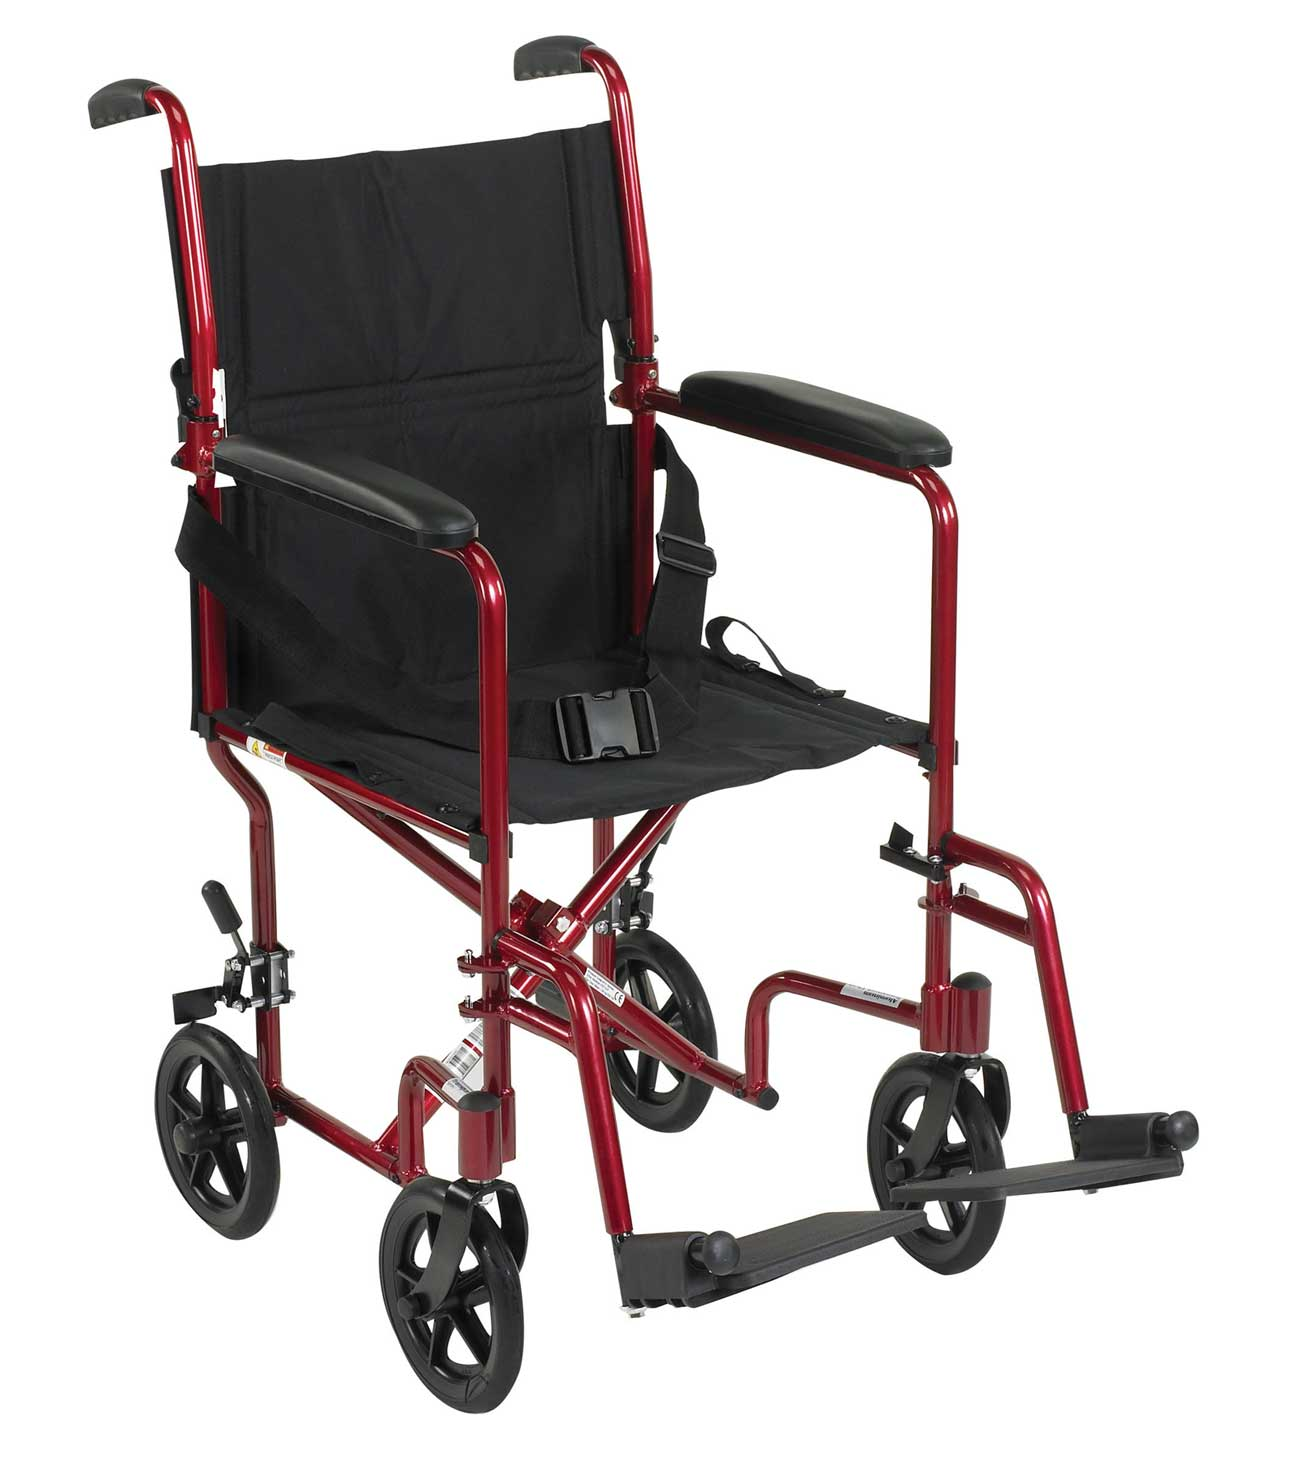 Red aluminum frame lightweight transport chairs